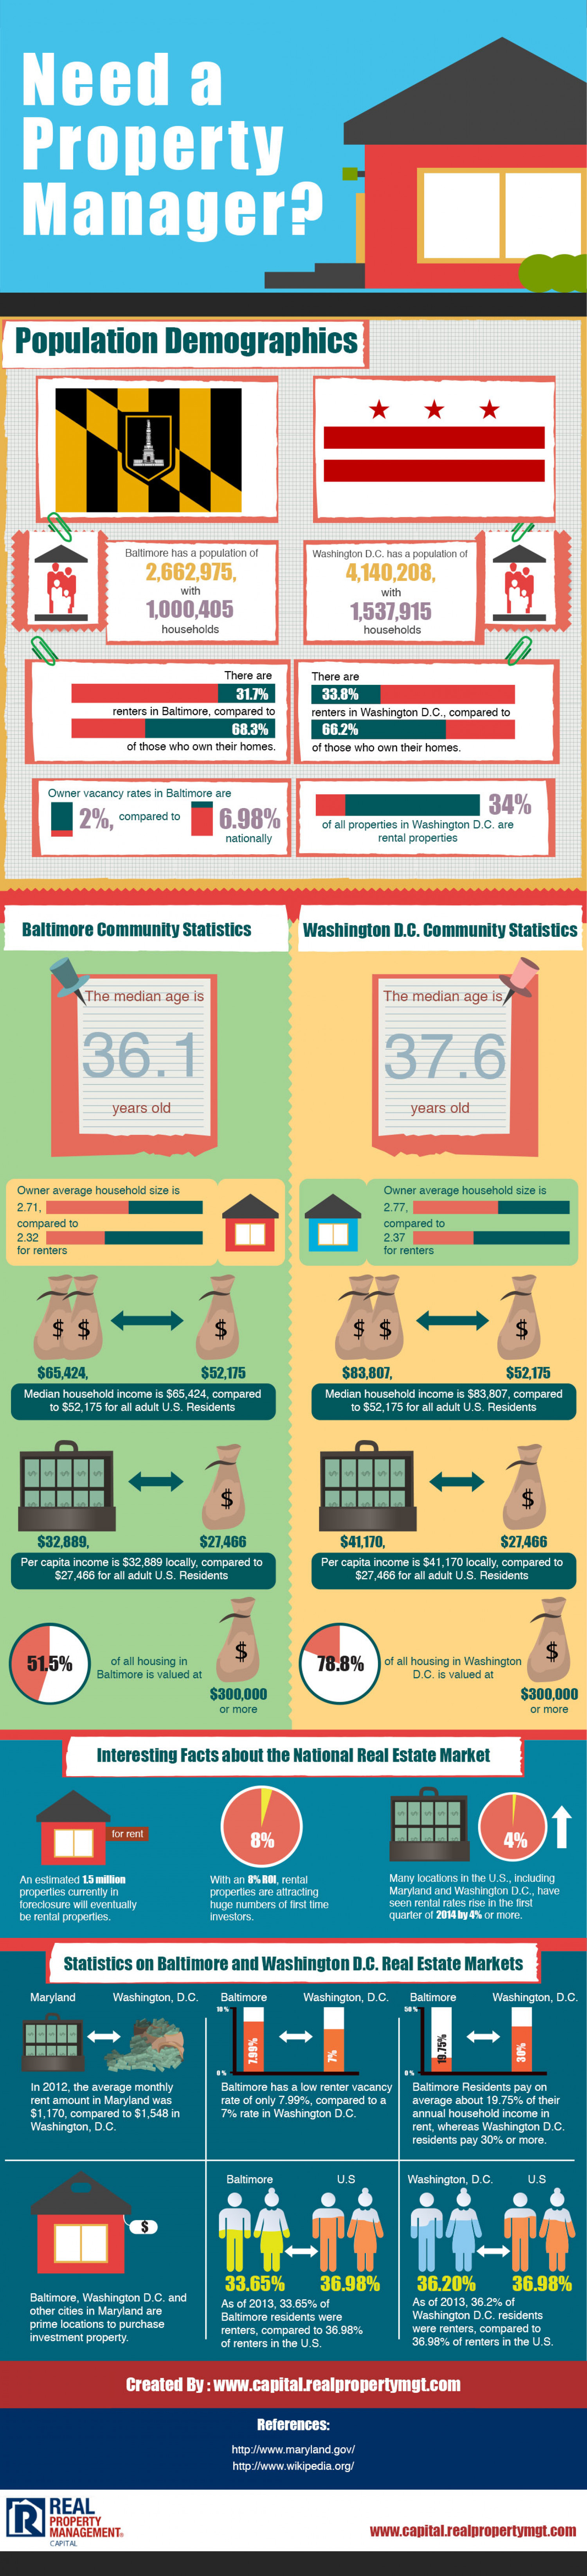 Need a Property Manager in Maryland? Infographic